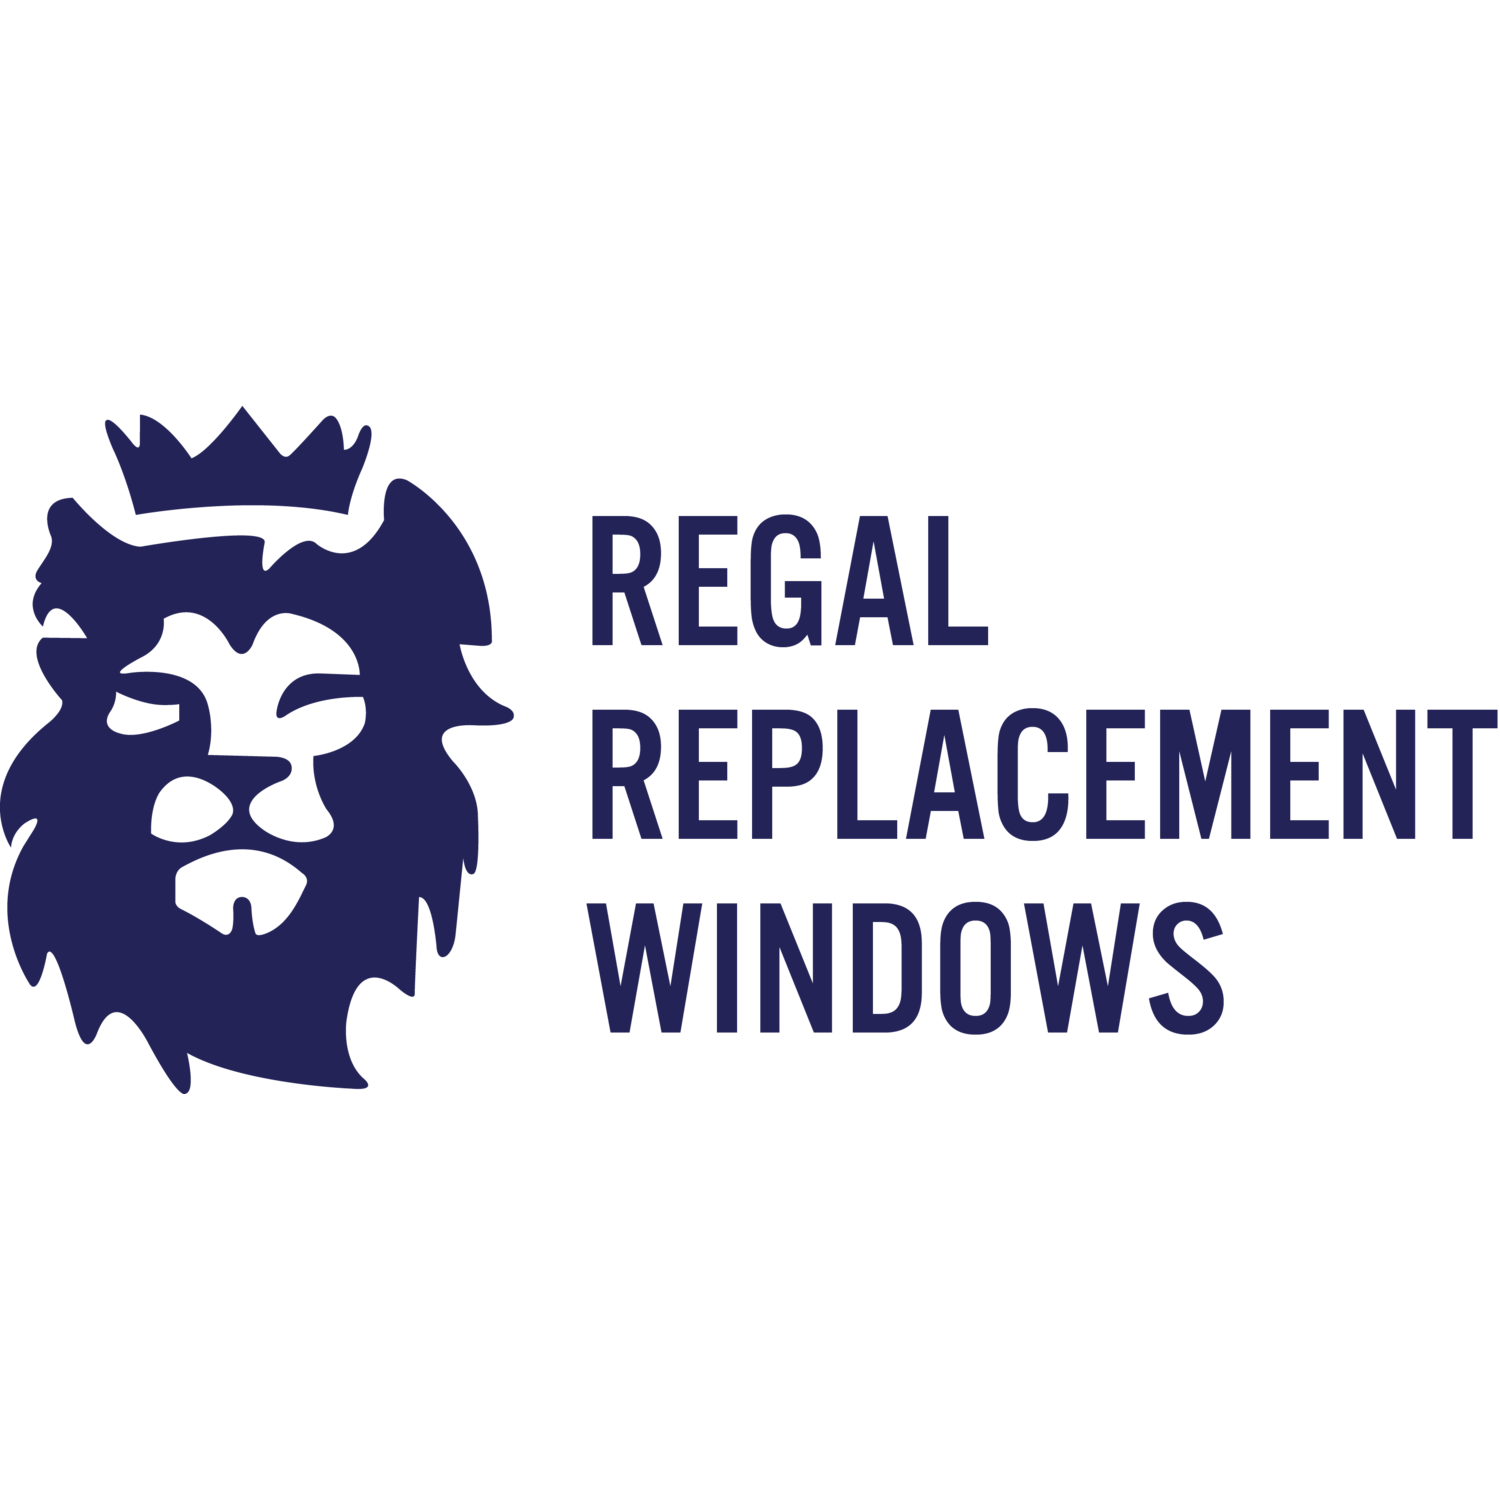 Regal replacement windows in portland me 04103 for Replacement for windows